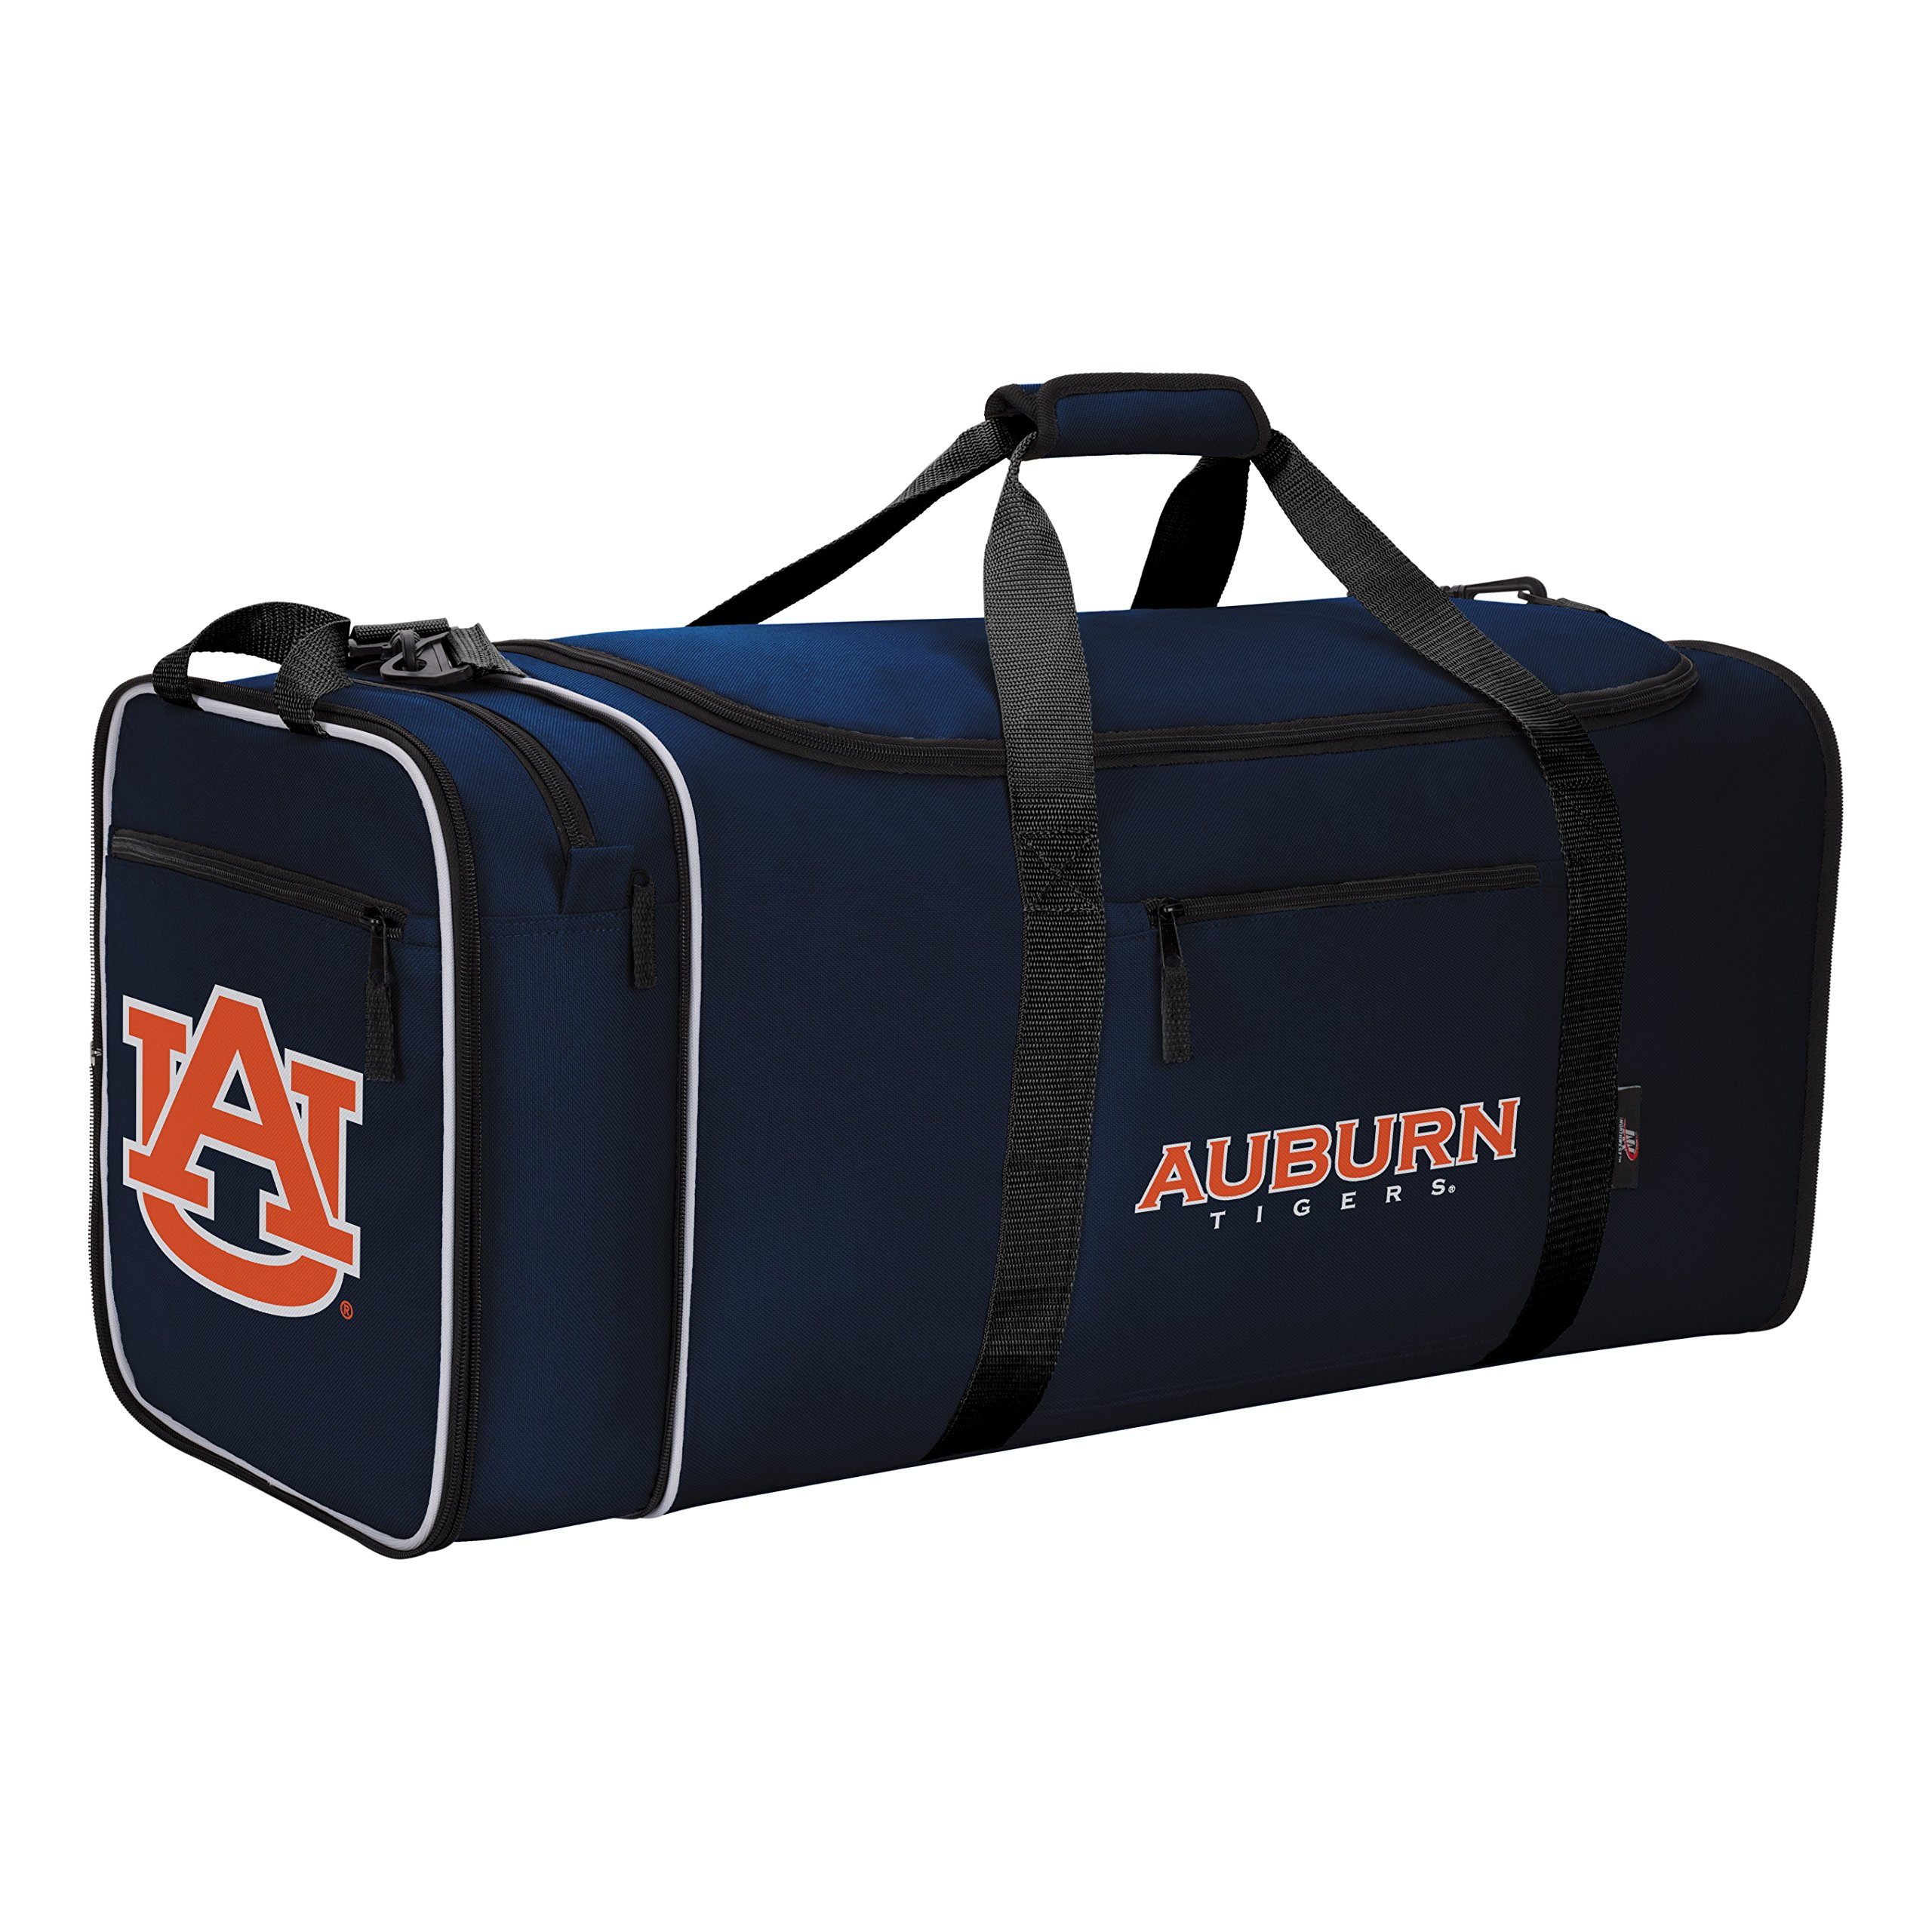 Officially Licensed NCAA Auburn Tigers Steal Duffel Bag by The Northwest Company (Image #3)